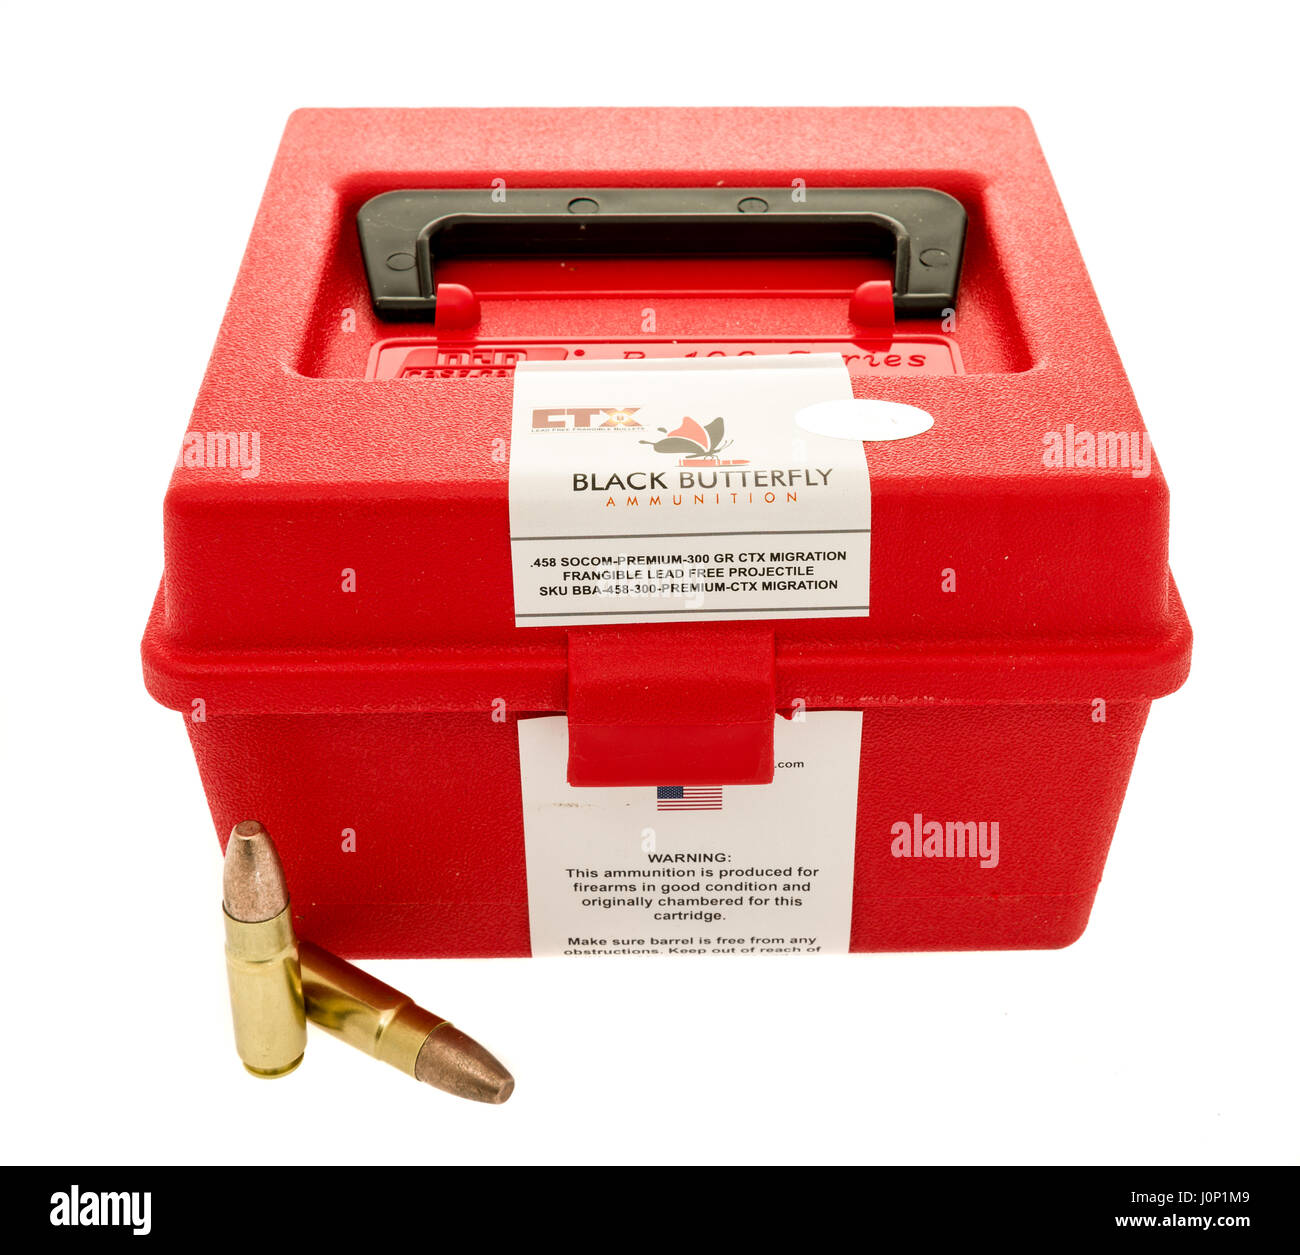 Winneconne, WI - 8 April 2017: An ammo can of  Black Butterfly 458 SOCOM ammunition with bullets on an isolated - Stock Image